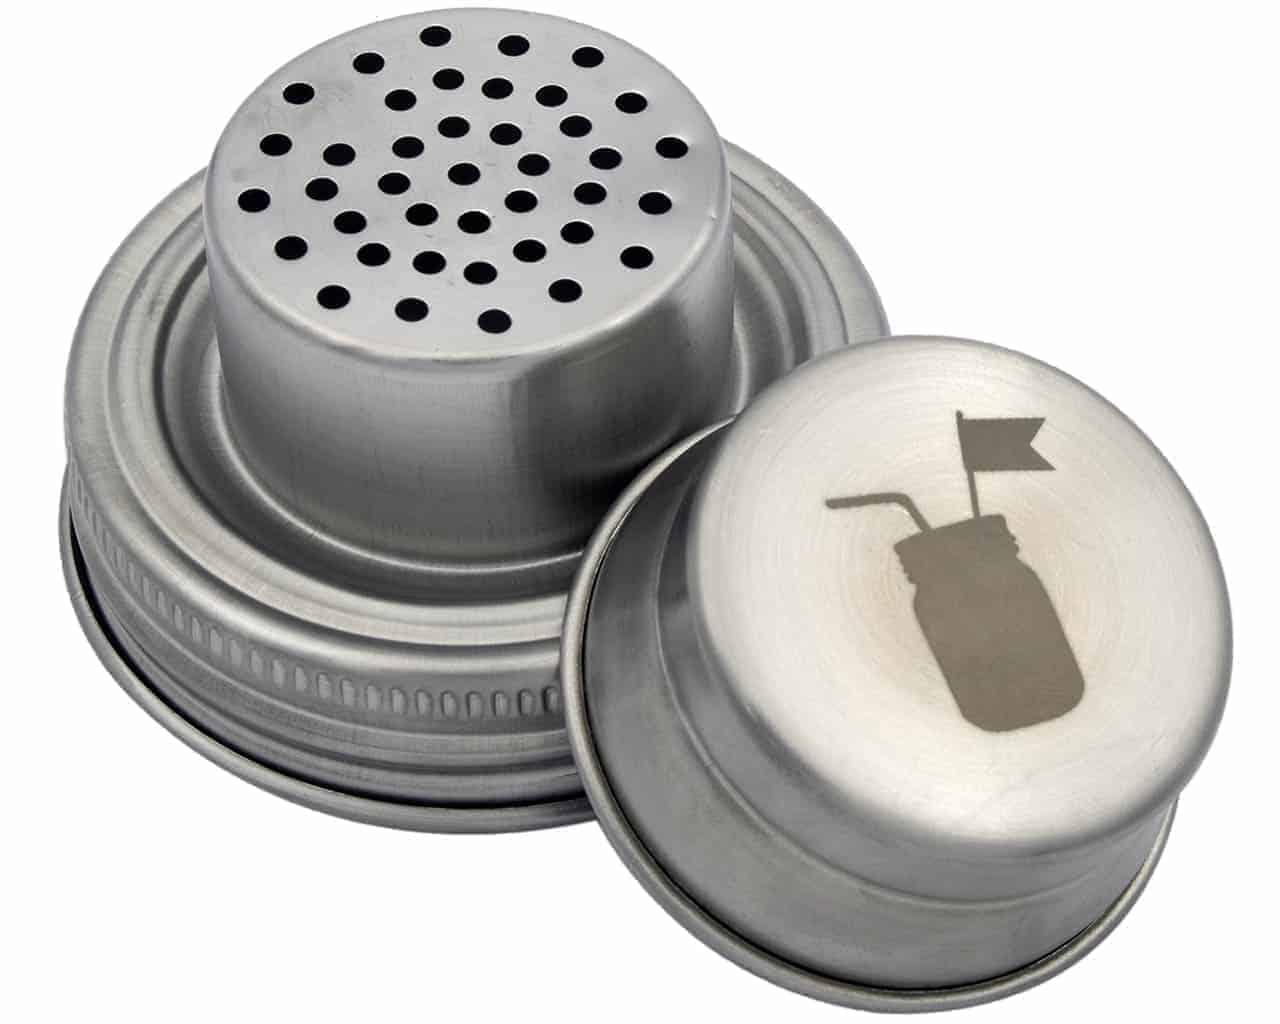 Mason Jar Lifestyle silver cocktail shaker with 2 silicone seals. Leak proof and rust proof.